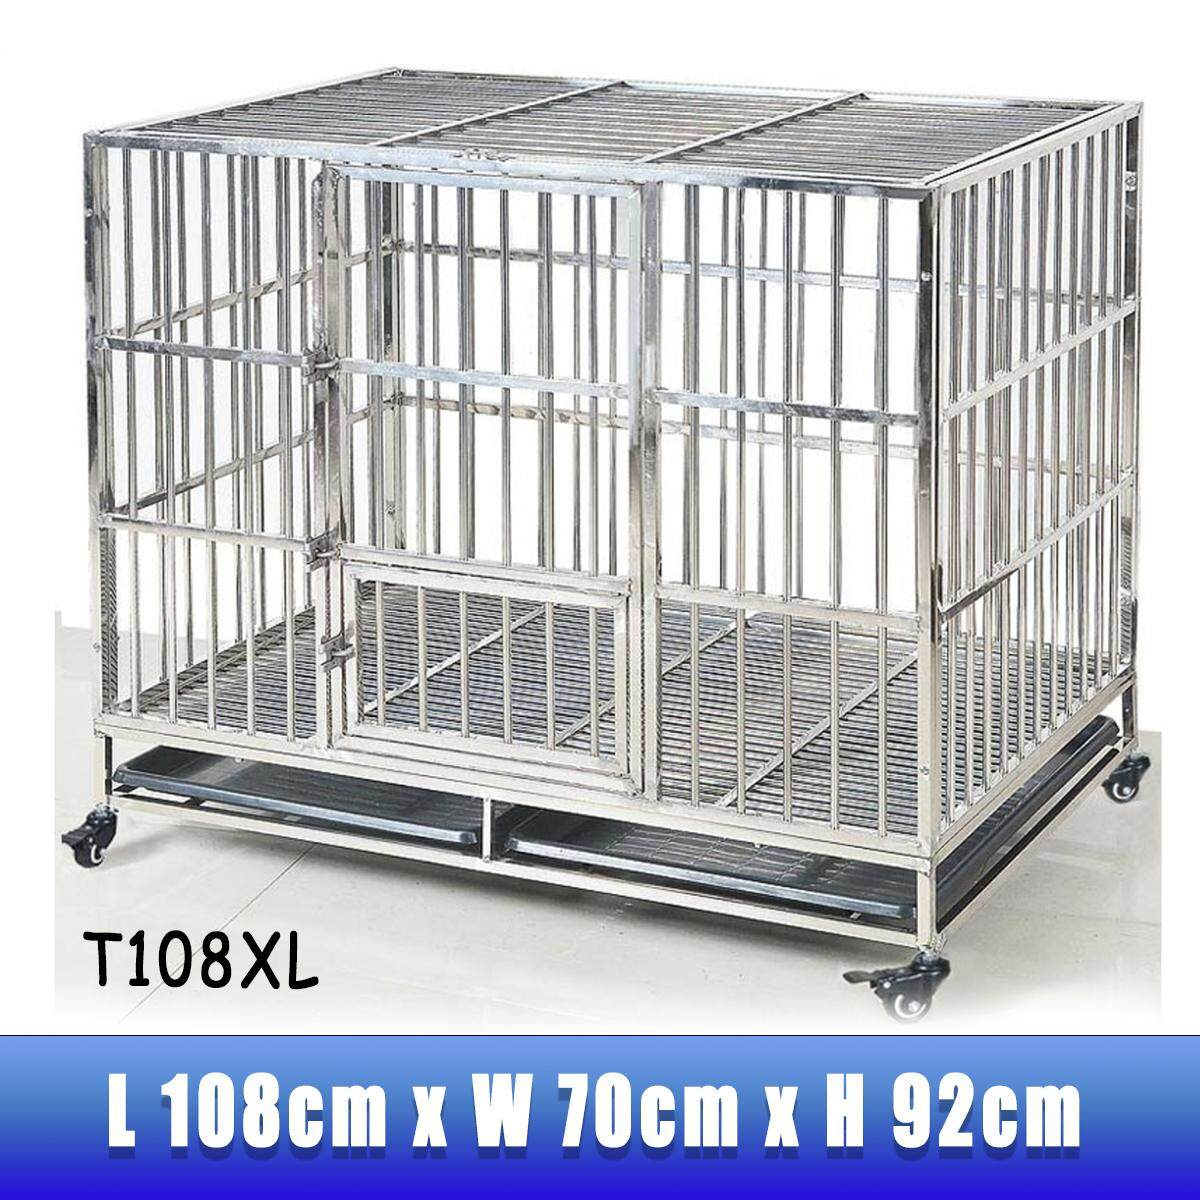 Extra Large T108XL Stainless Steel Dog Cage Dog Crate 108x70x92CM